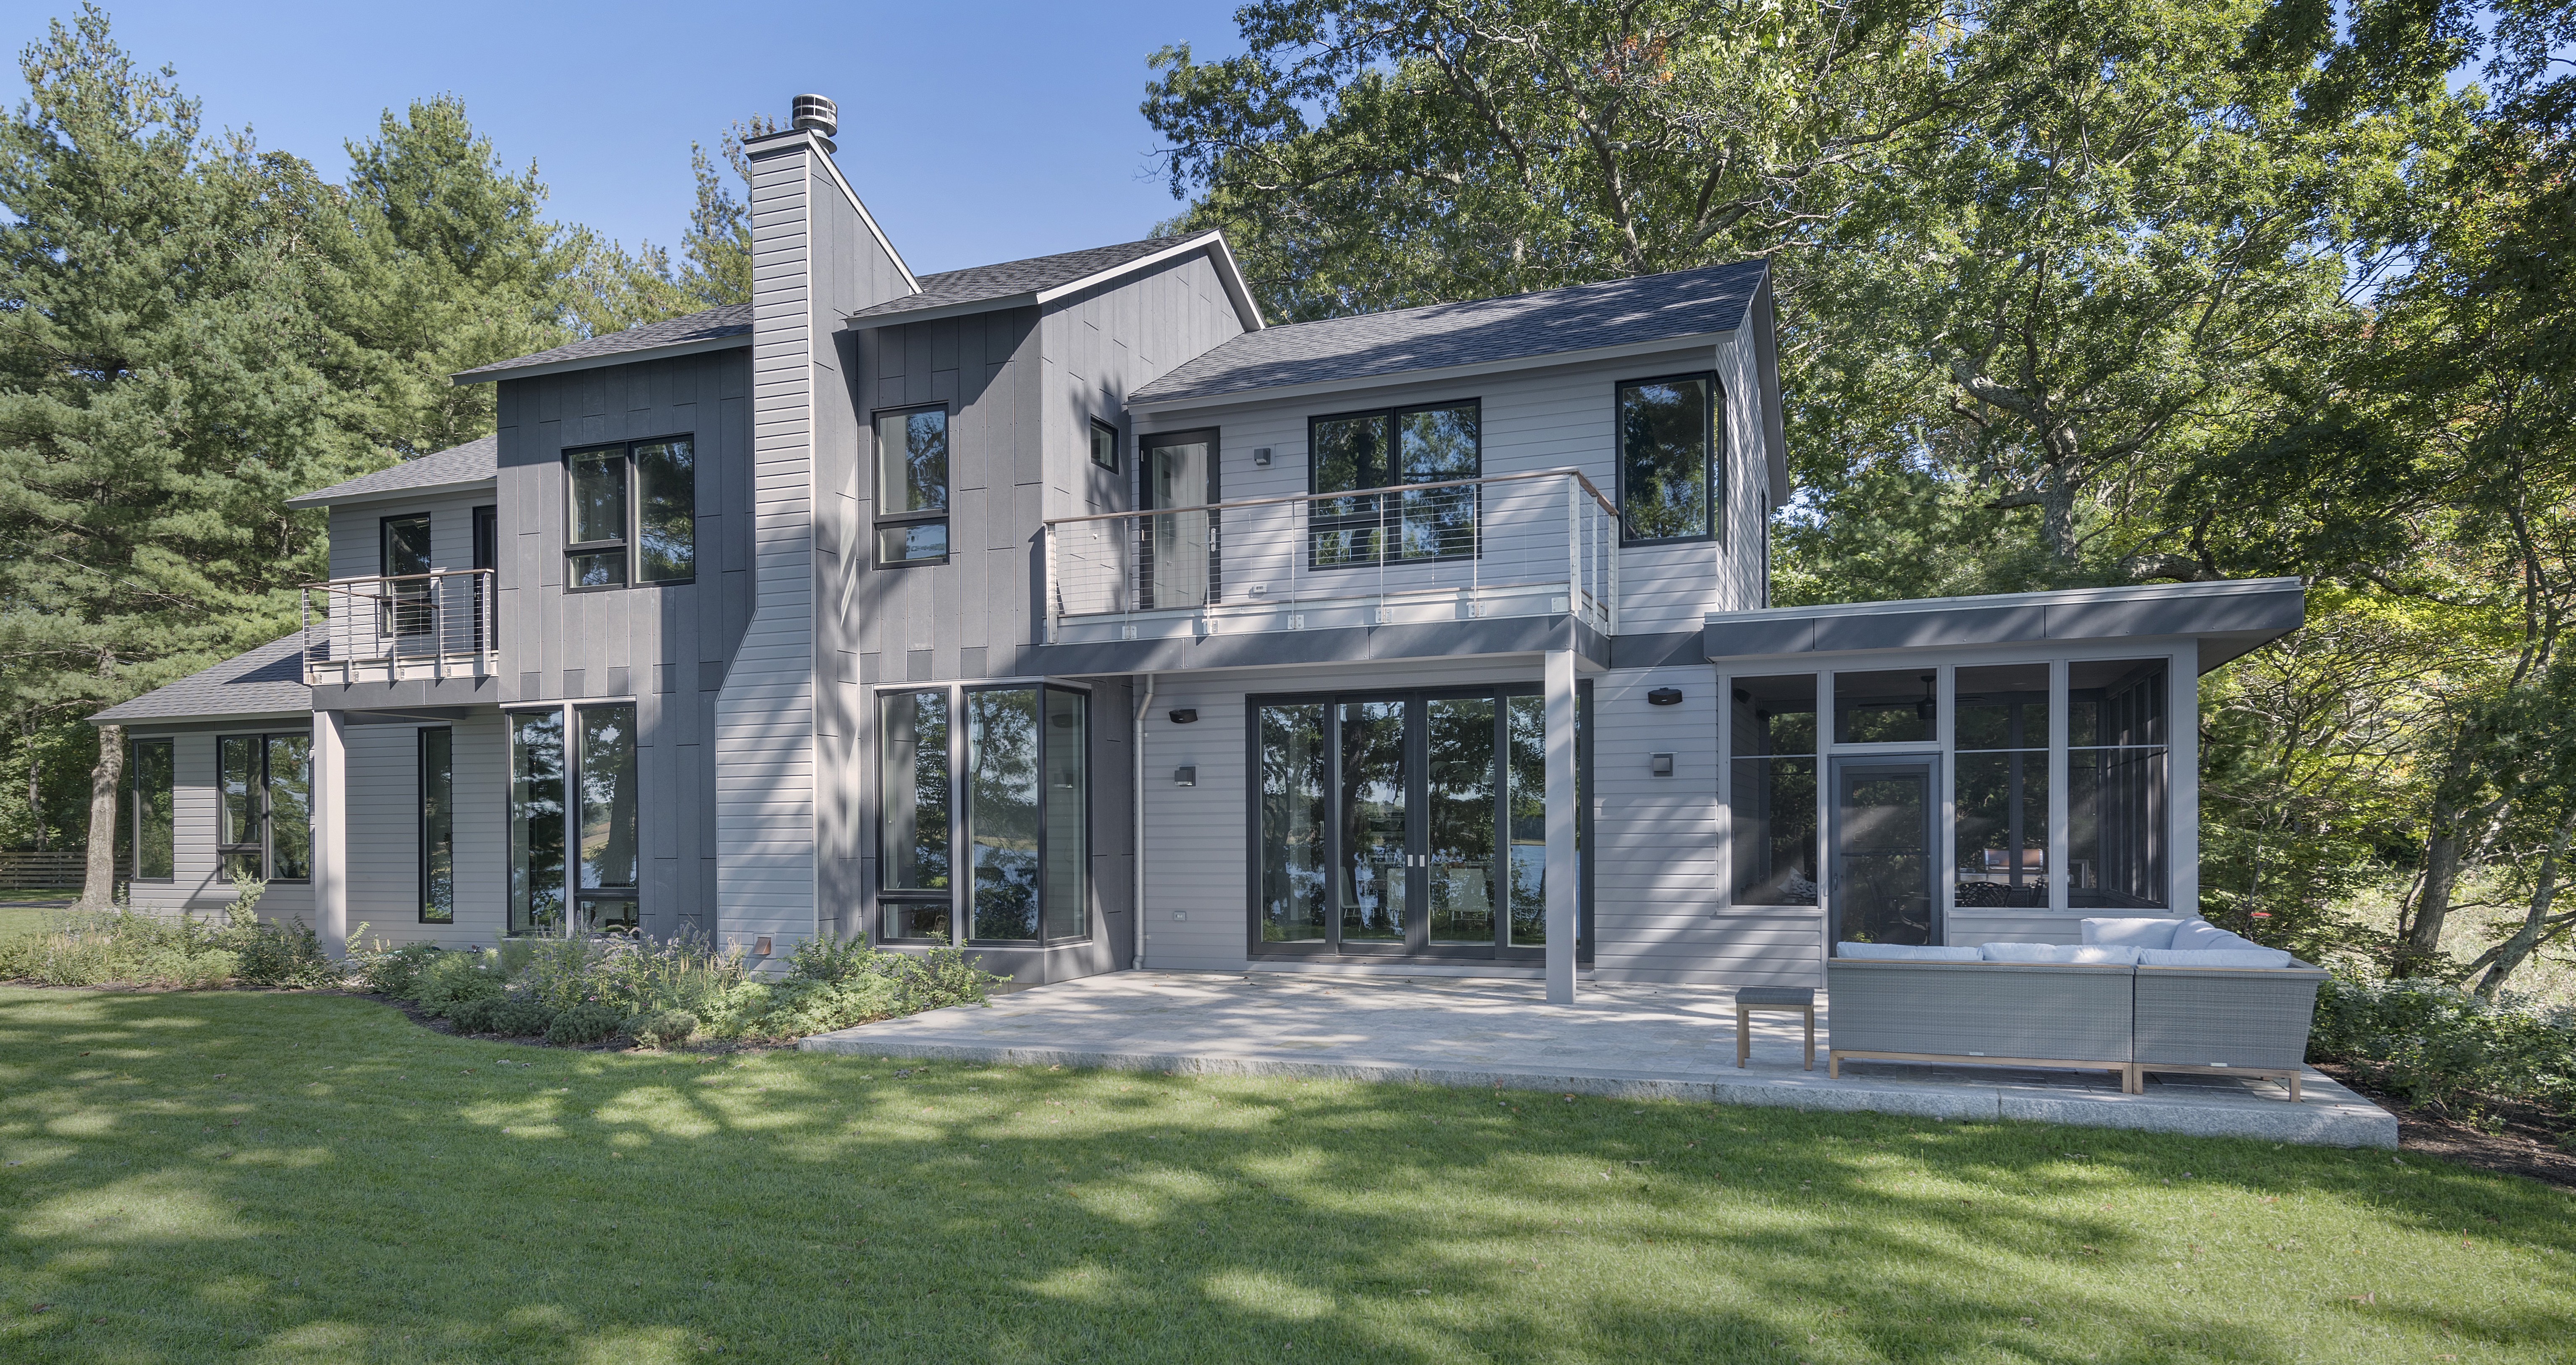 Kite_1532_Hundred Acre Cove_Greenspan Residence_Exterior_Day_Rear